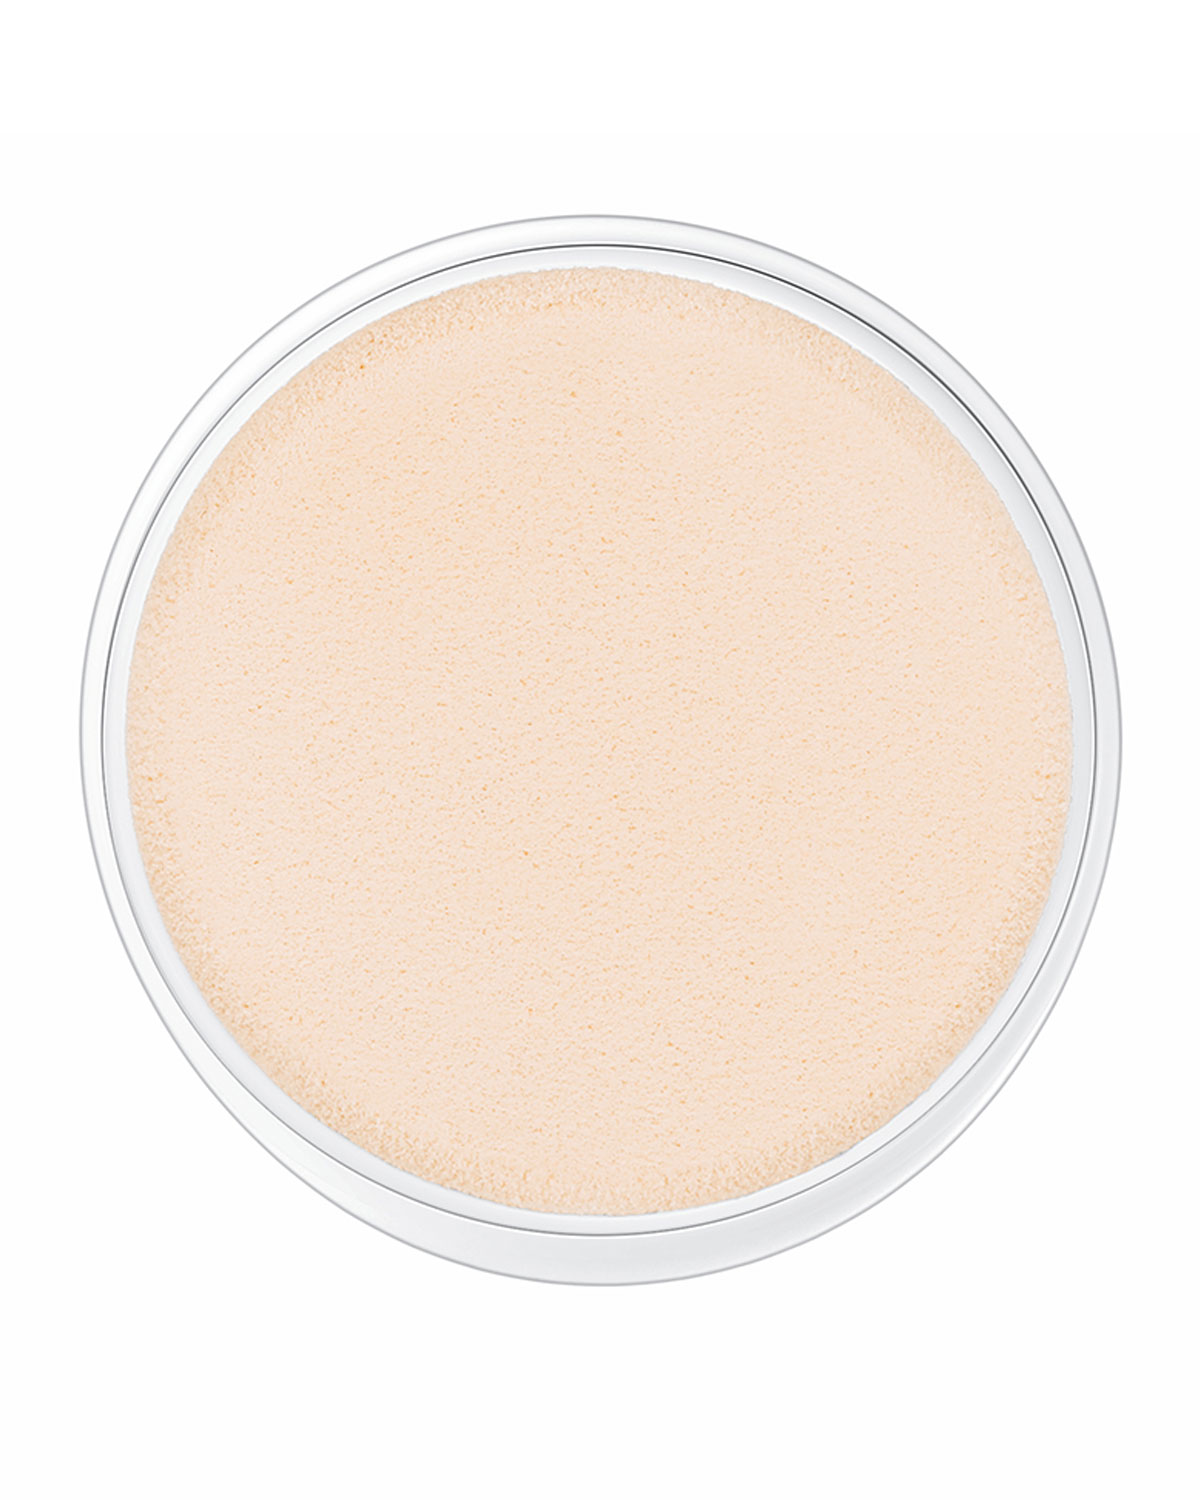 Clinique Sonic System Airbrushed Finish Liquid Foundation Sponge Head